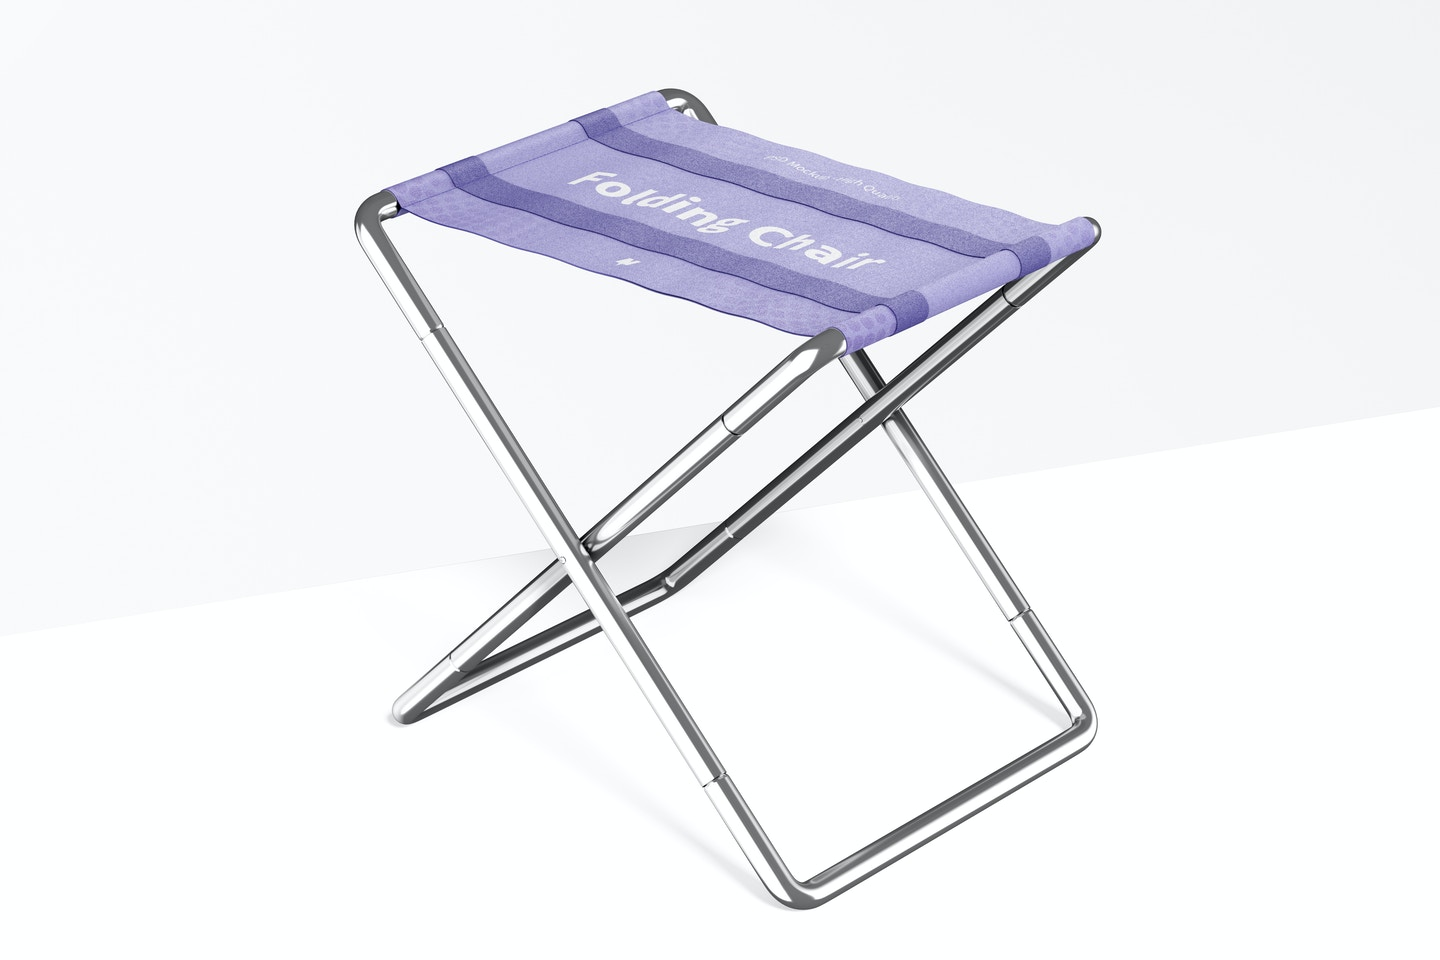 Folding Chair Mockup, Perspective